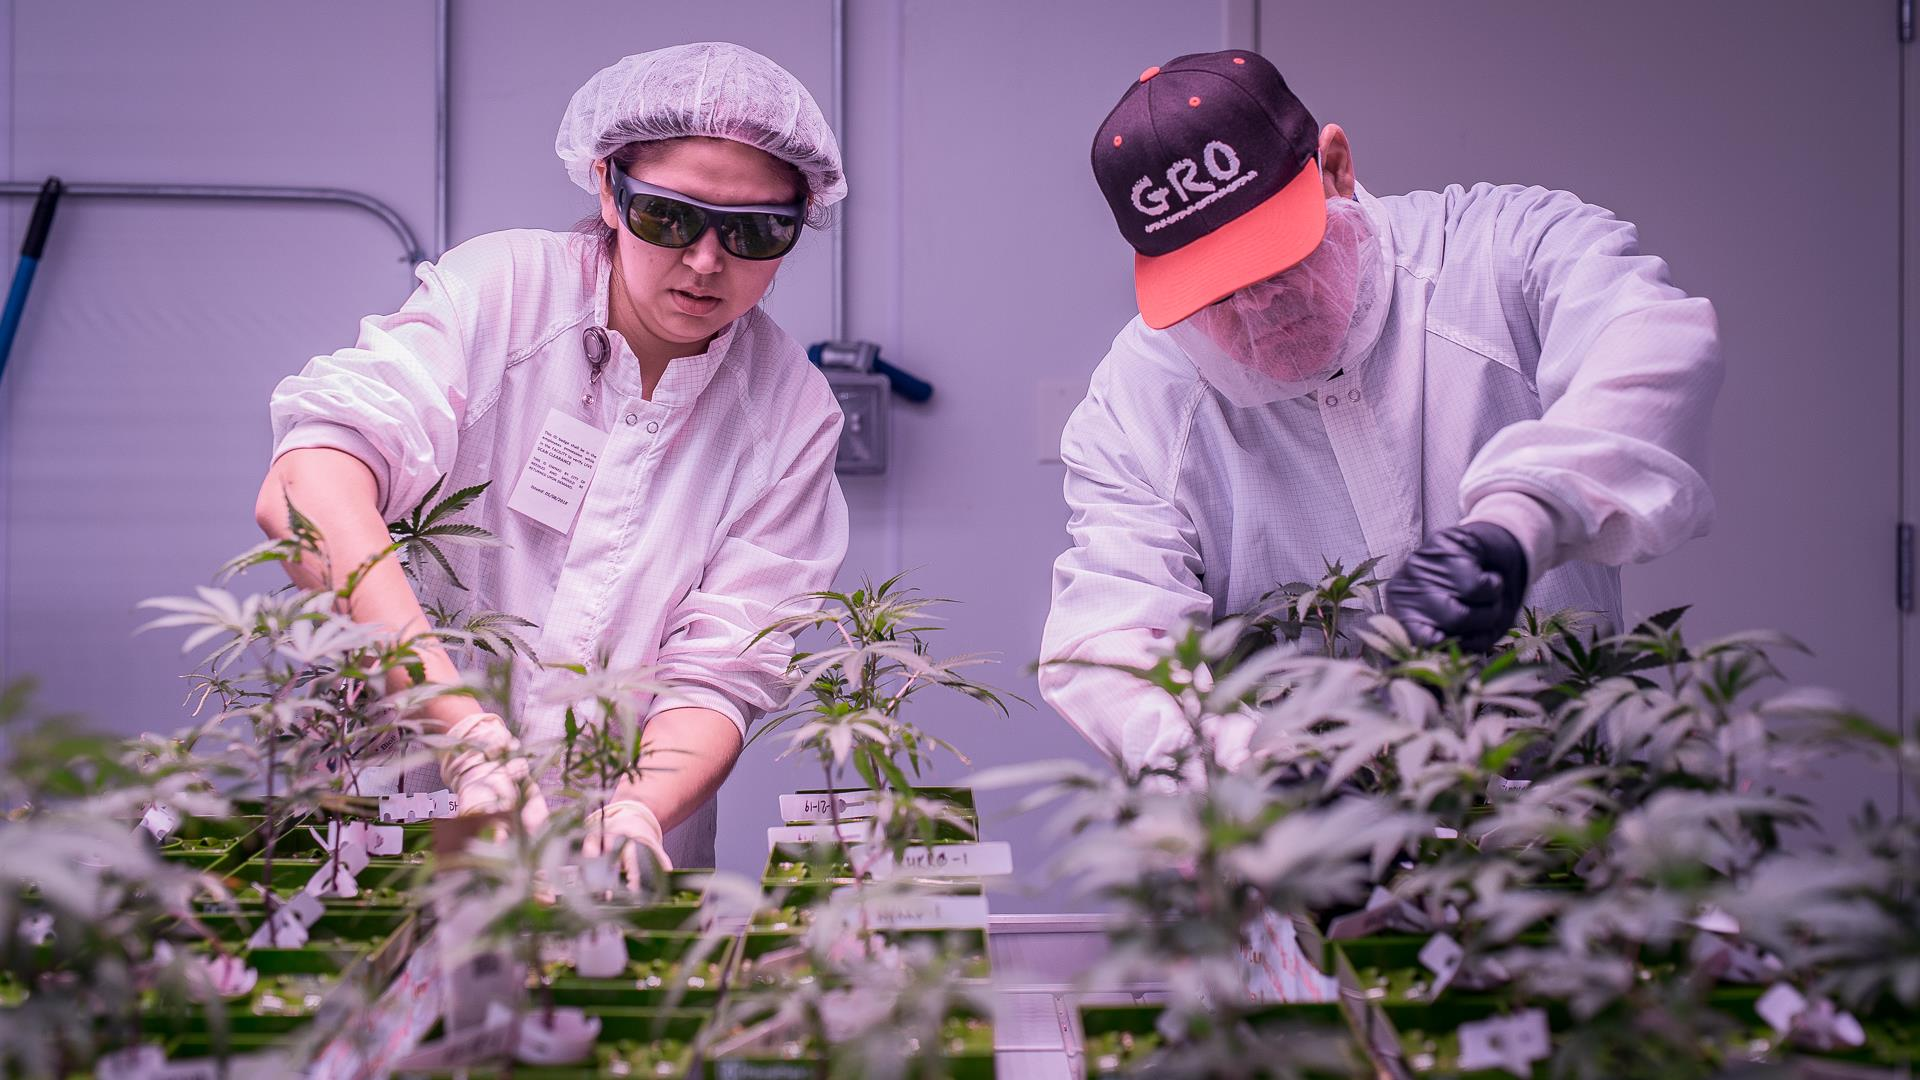 Pot, pain and profit: A desert town turns to cannabis for jobs and an alternative to painkillers